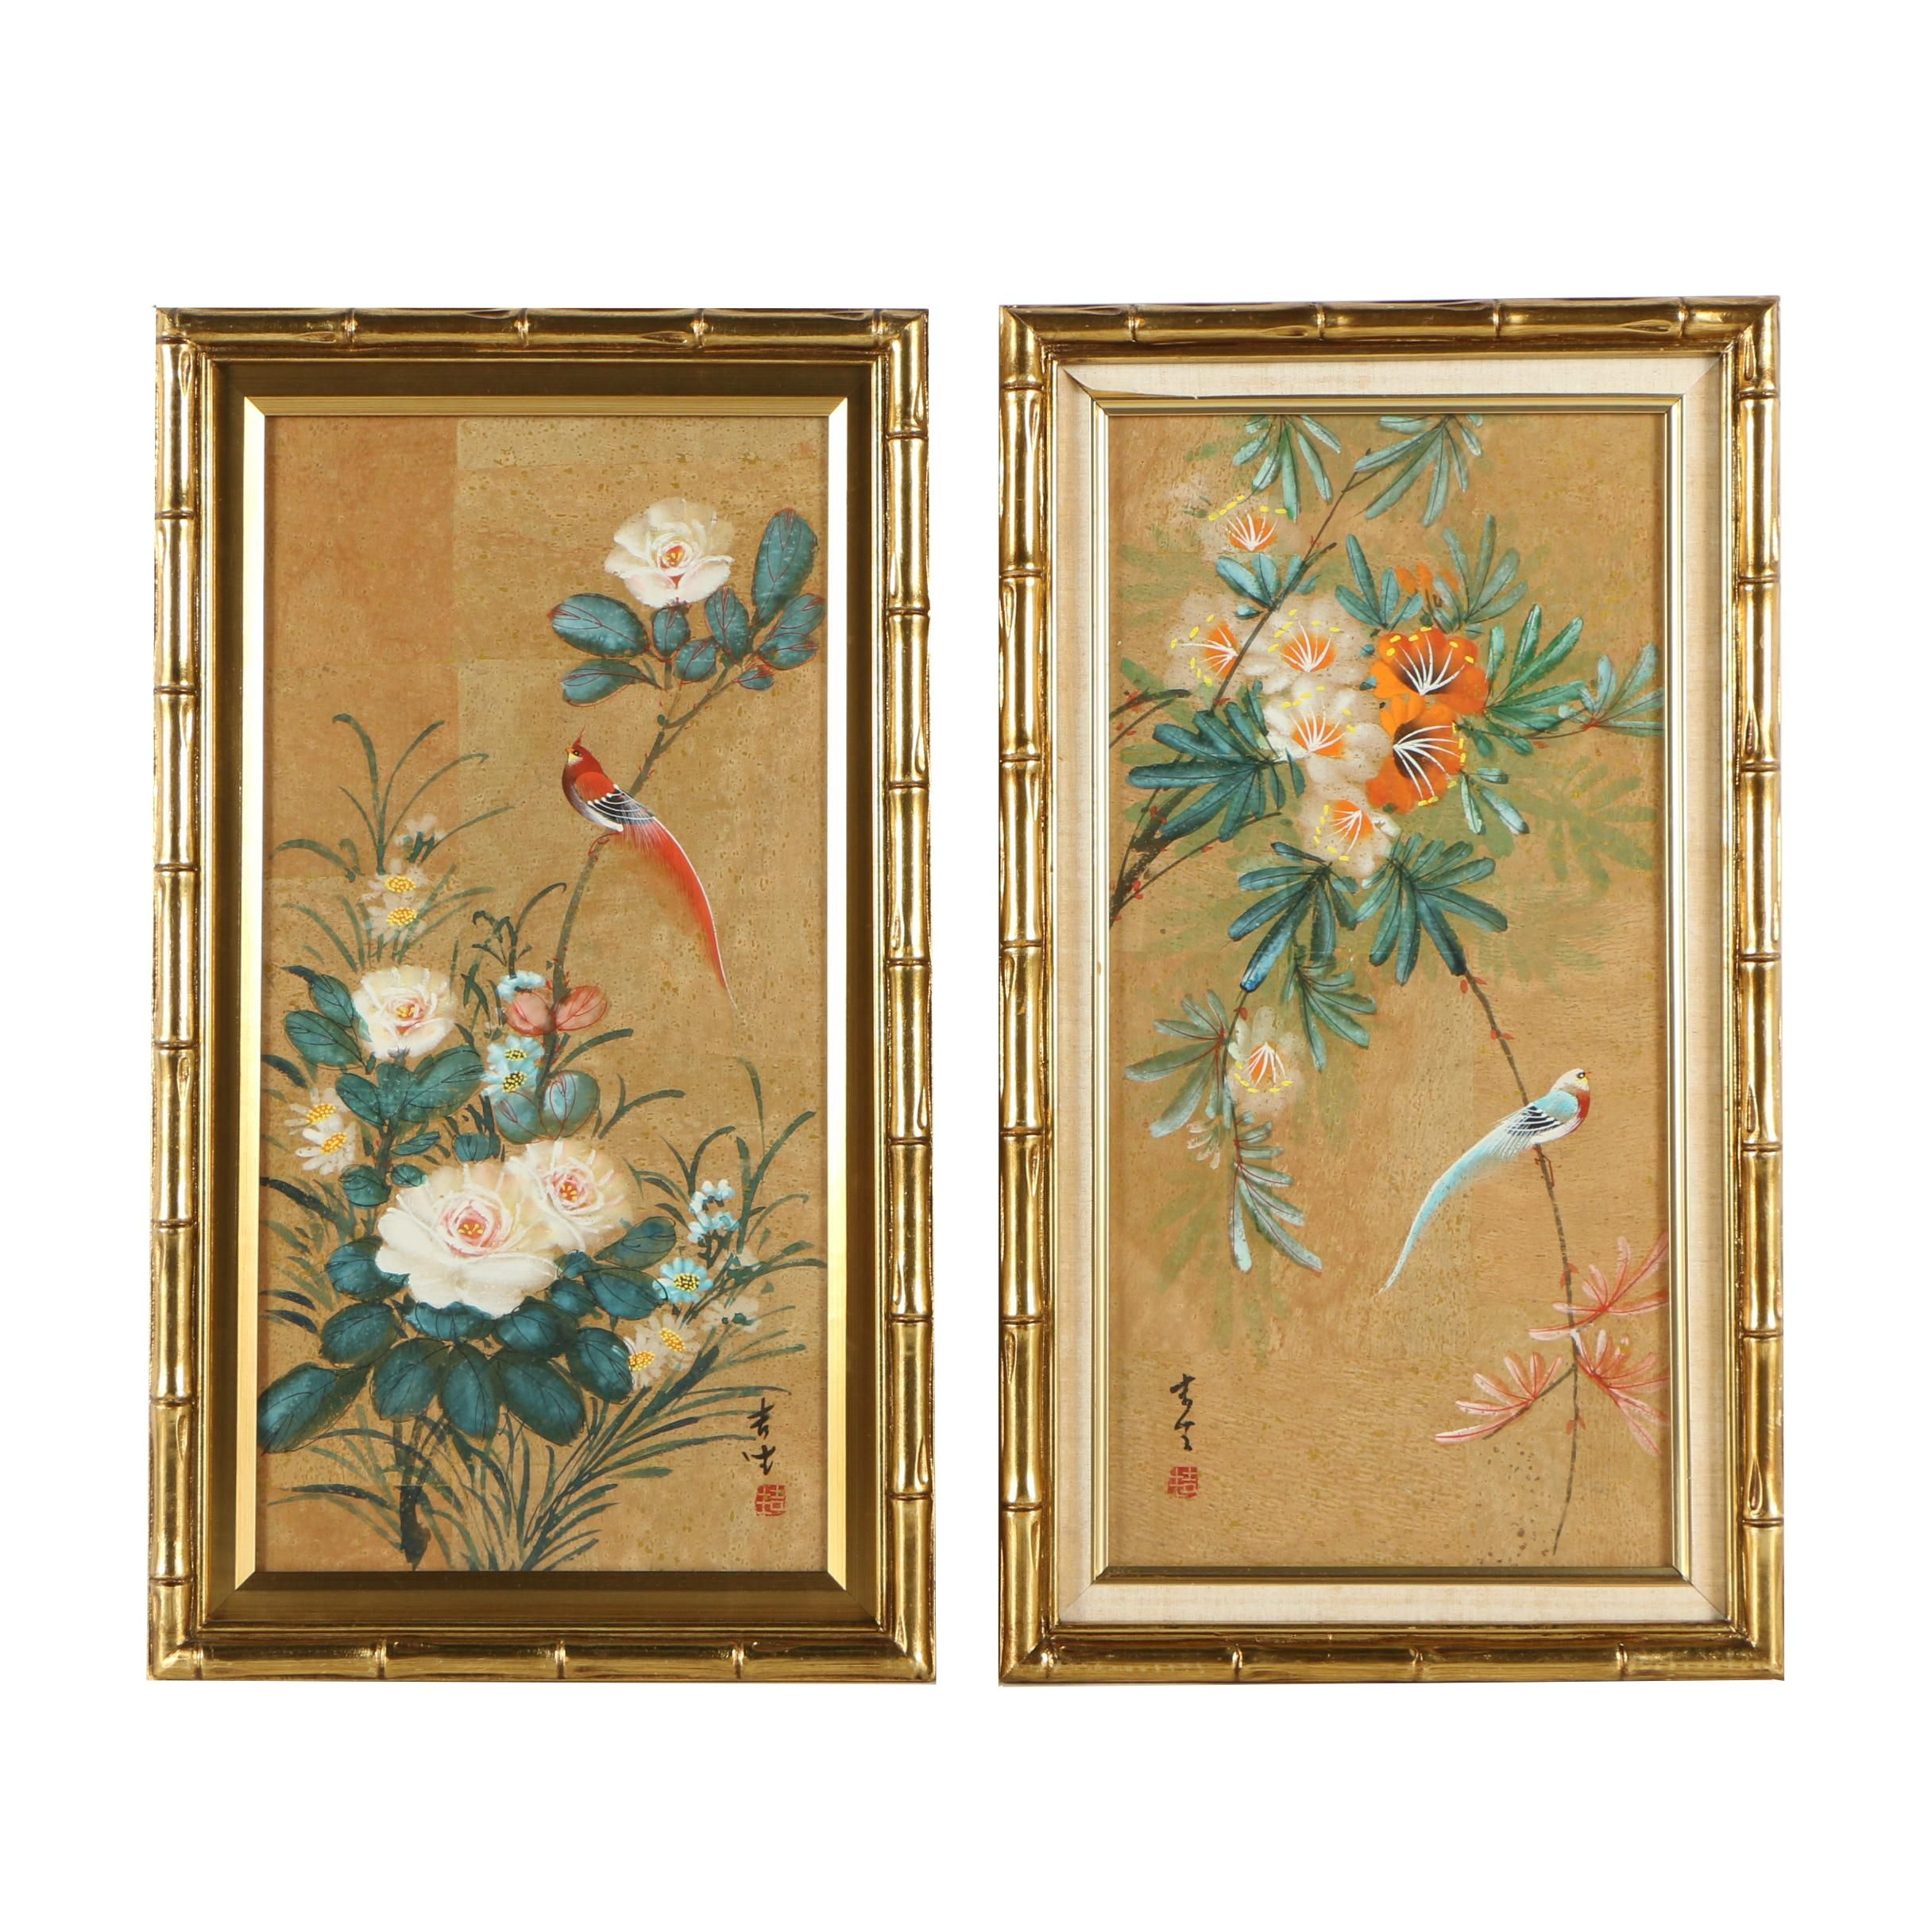 Two Chinese Gouache Paintings on Cork